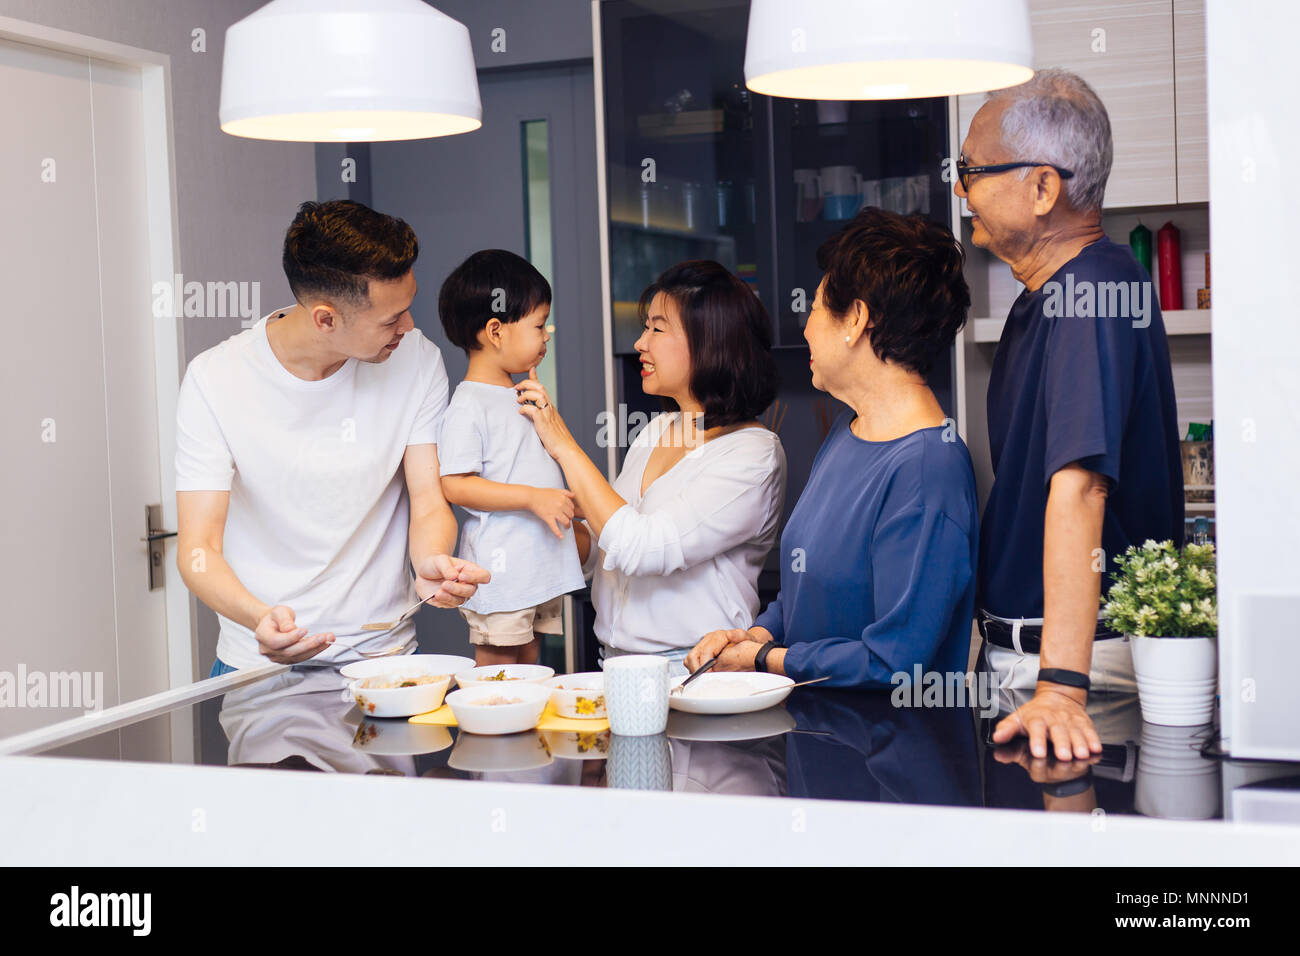 Happy Asian extended family preparing food at home full of laughter and happiness - Stock Image